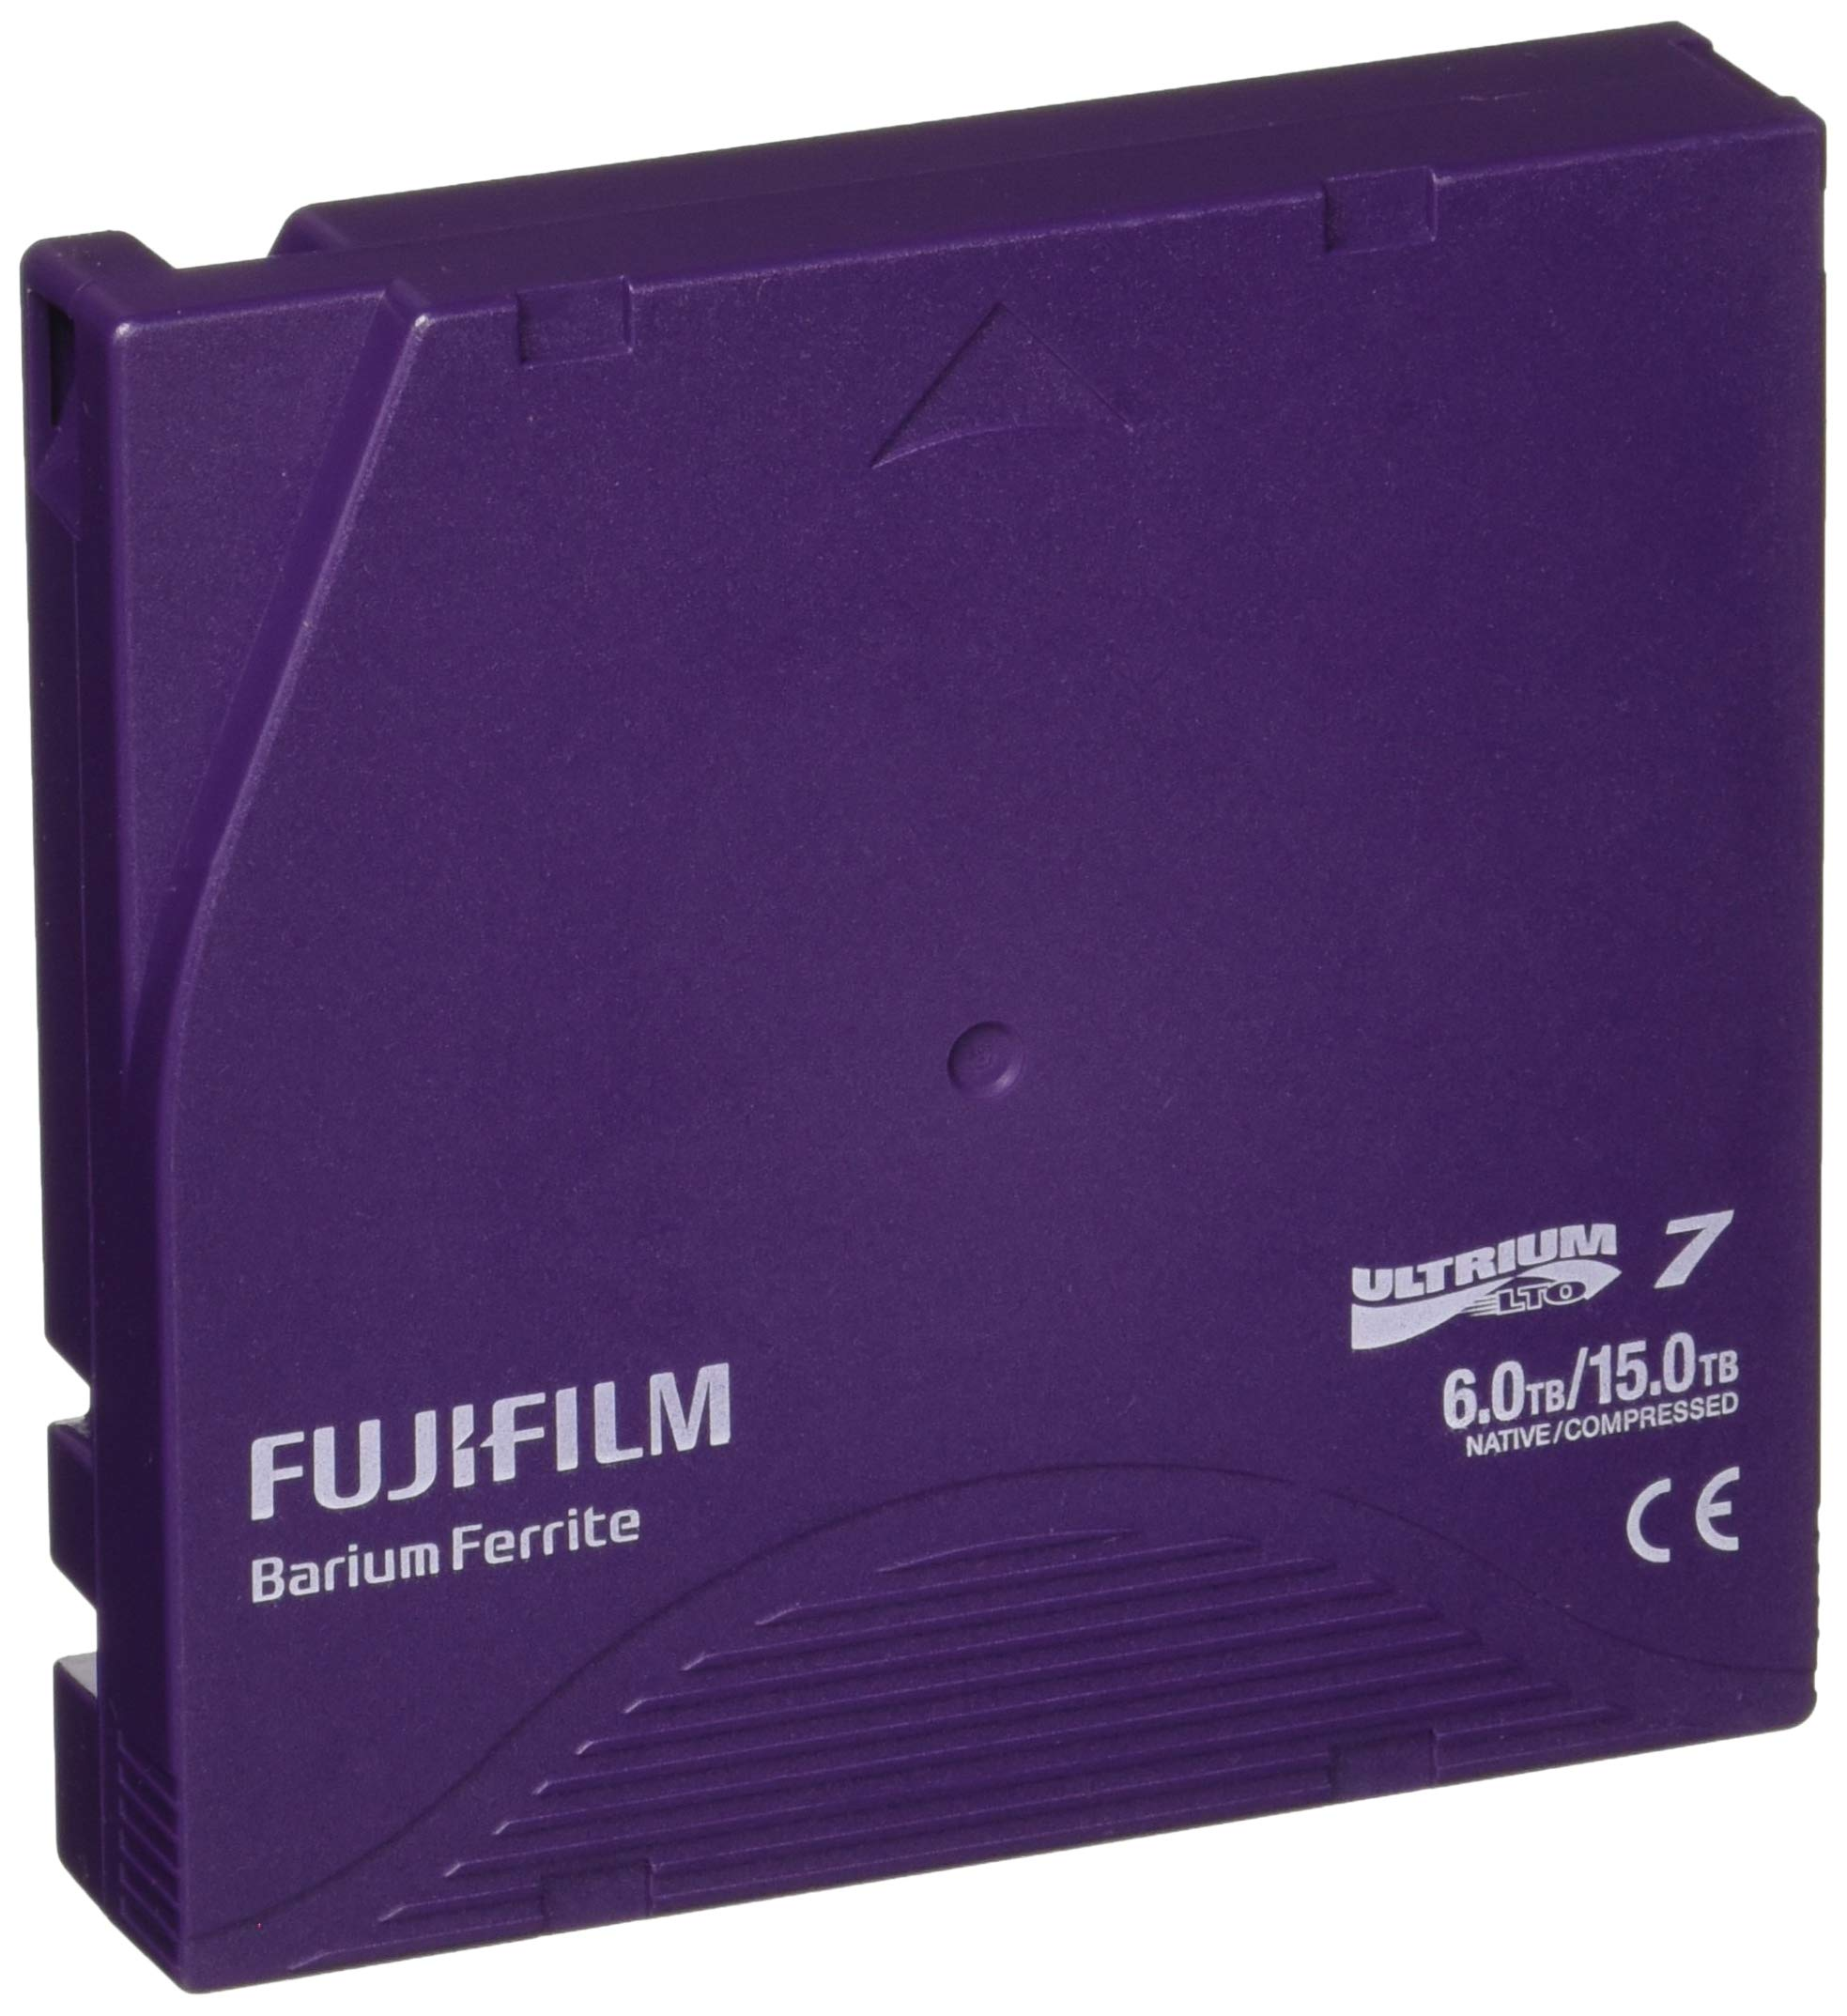 Data Cartridge FUJI Ultrium LTO-7 6.0/15TB